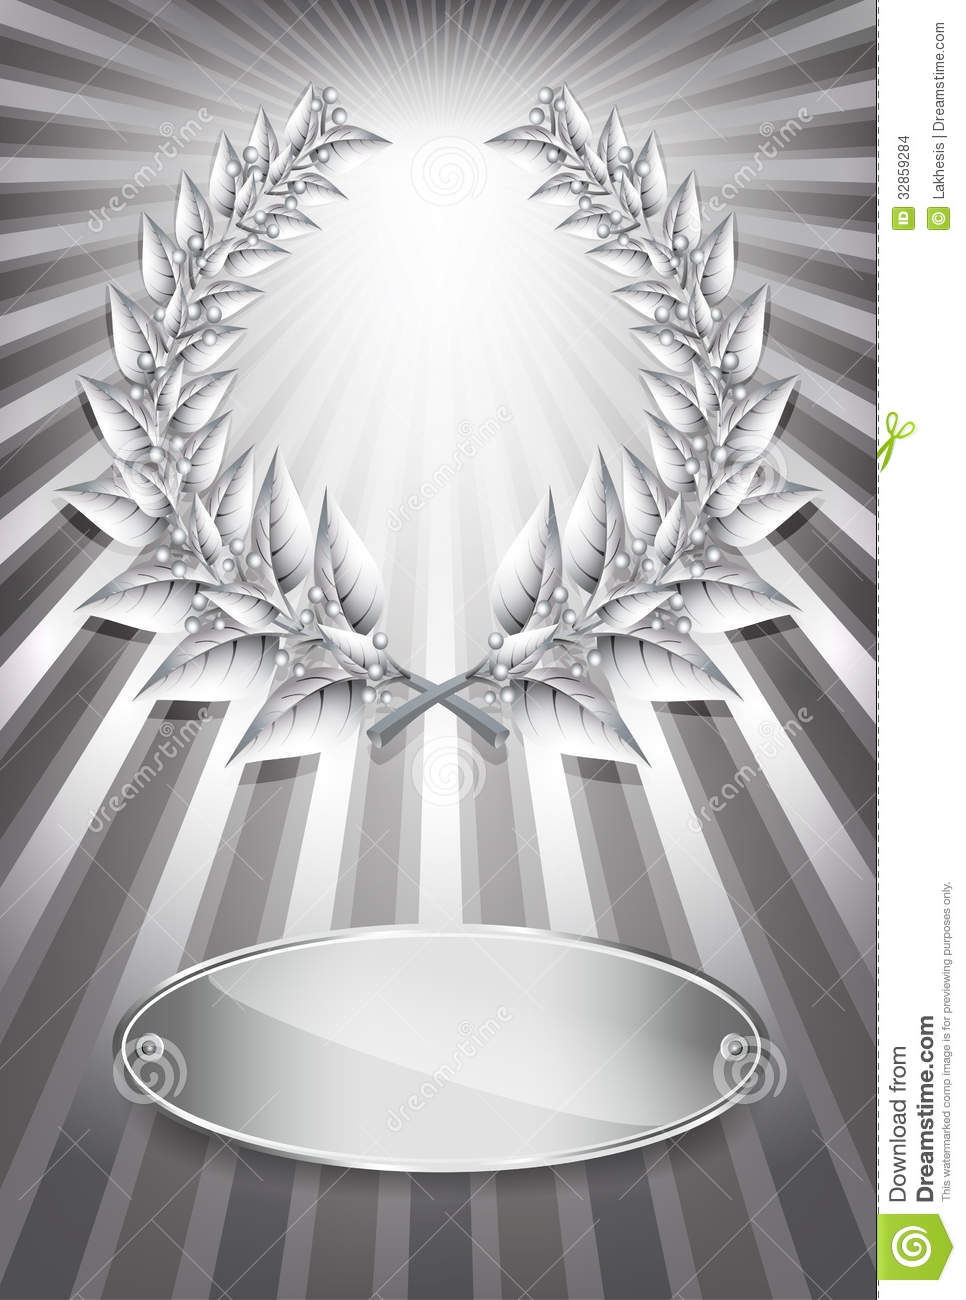 silver award laurel wreath and label stock images